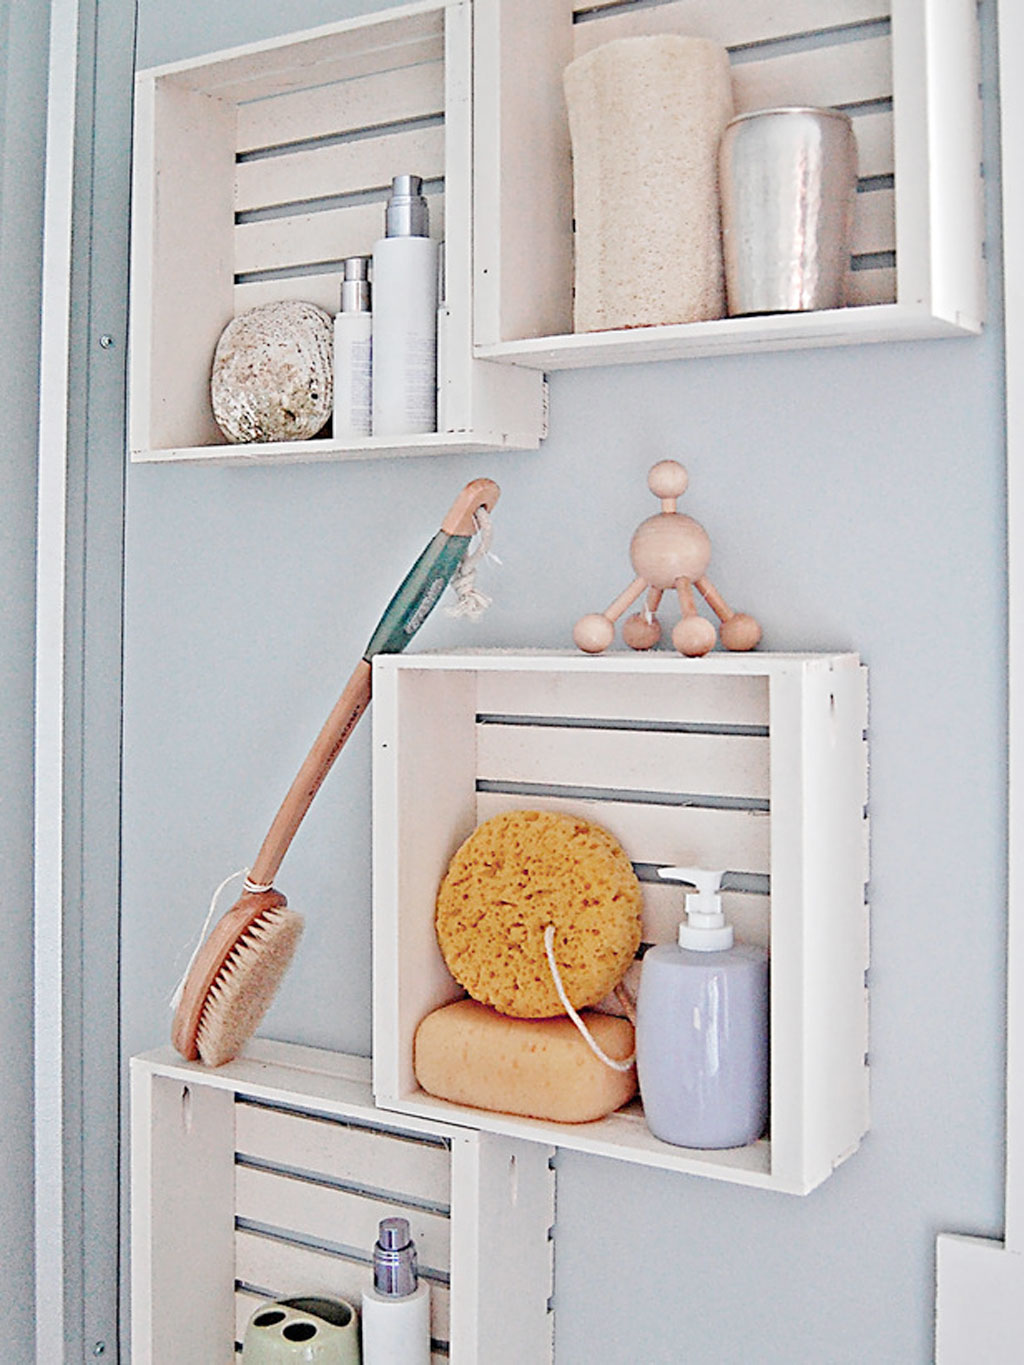 Diy bathroom ideas for small spaces - 6 Photos Of The Efficient Bathroom Storage Ideas For Small Spaces